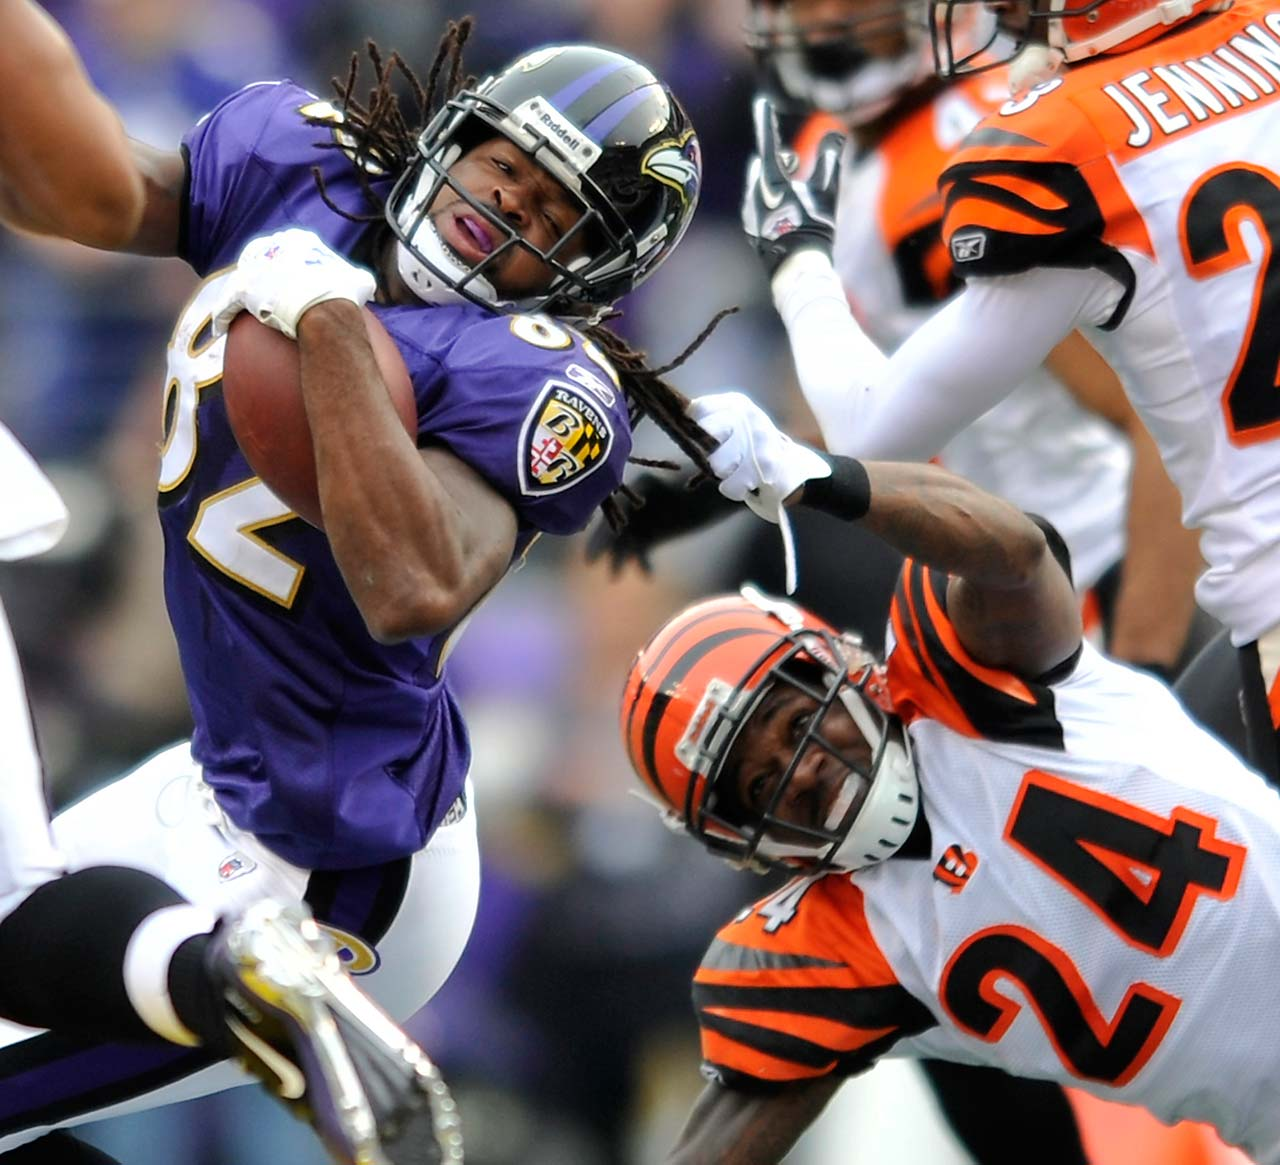 The league ruled in 2003 that long hair is an extension of the uniform, and thus it's OK to grab it to make a tackle. Torrey Smith learned that lesson the hard way when Adam Jones yanked Smith's hair during a 2011 game. Here are some other rules closely associated with players and coaches.